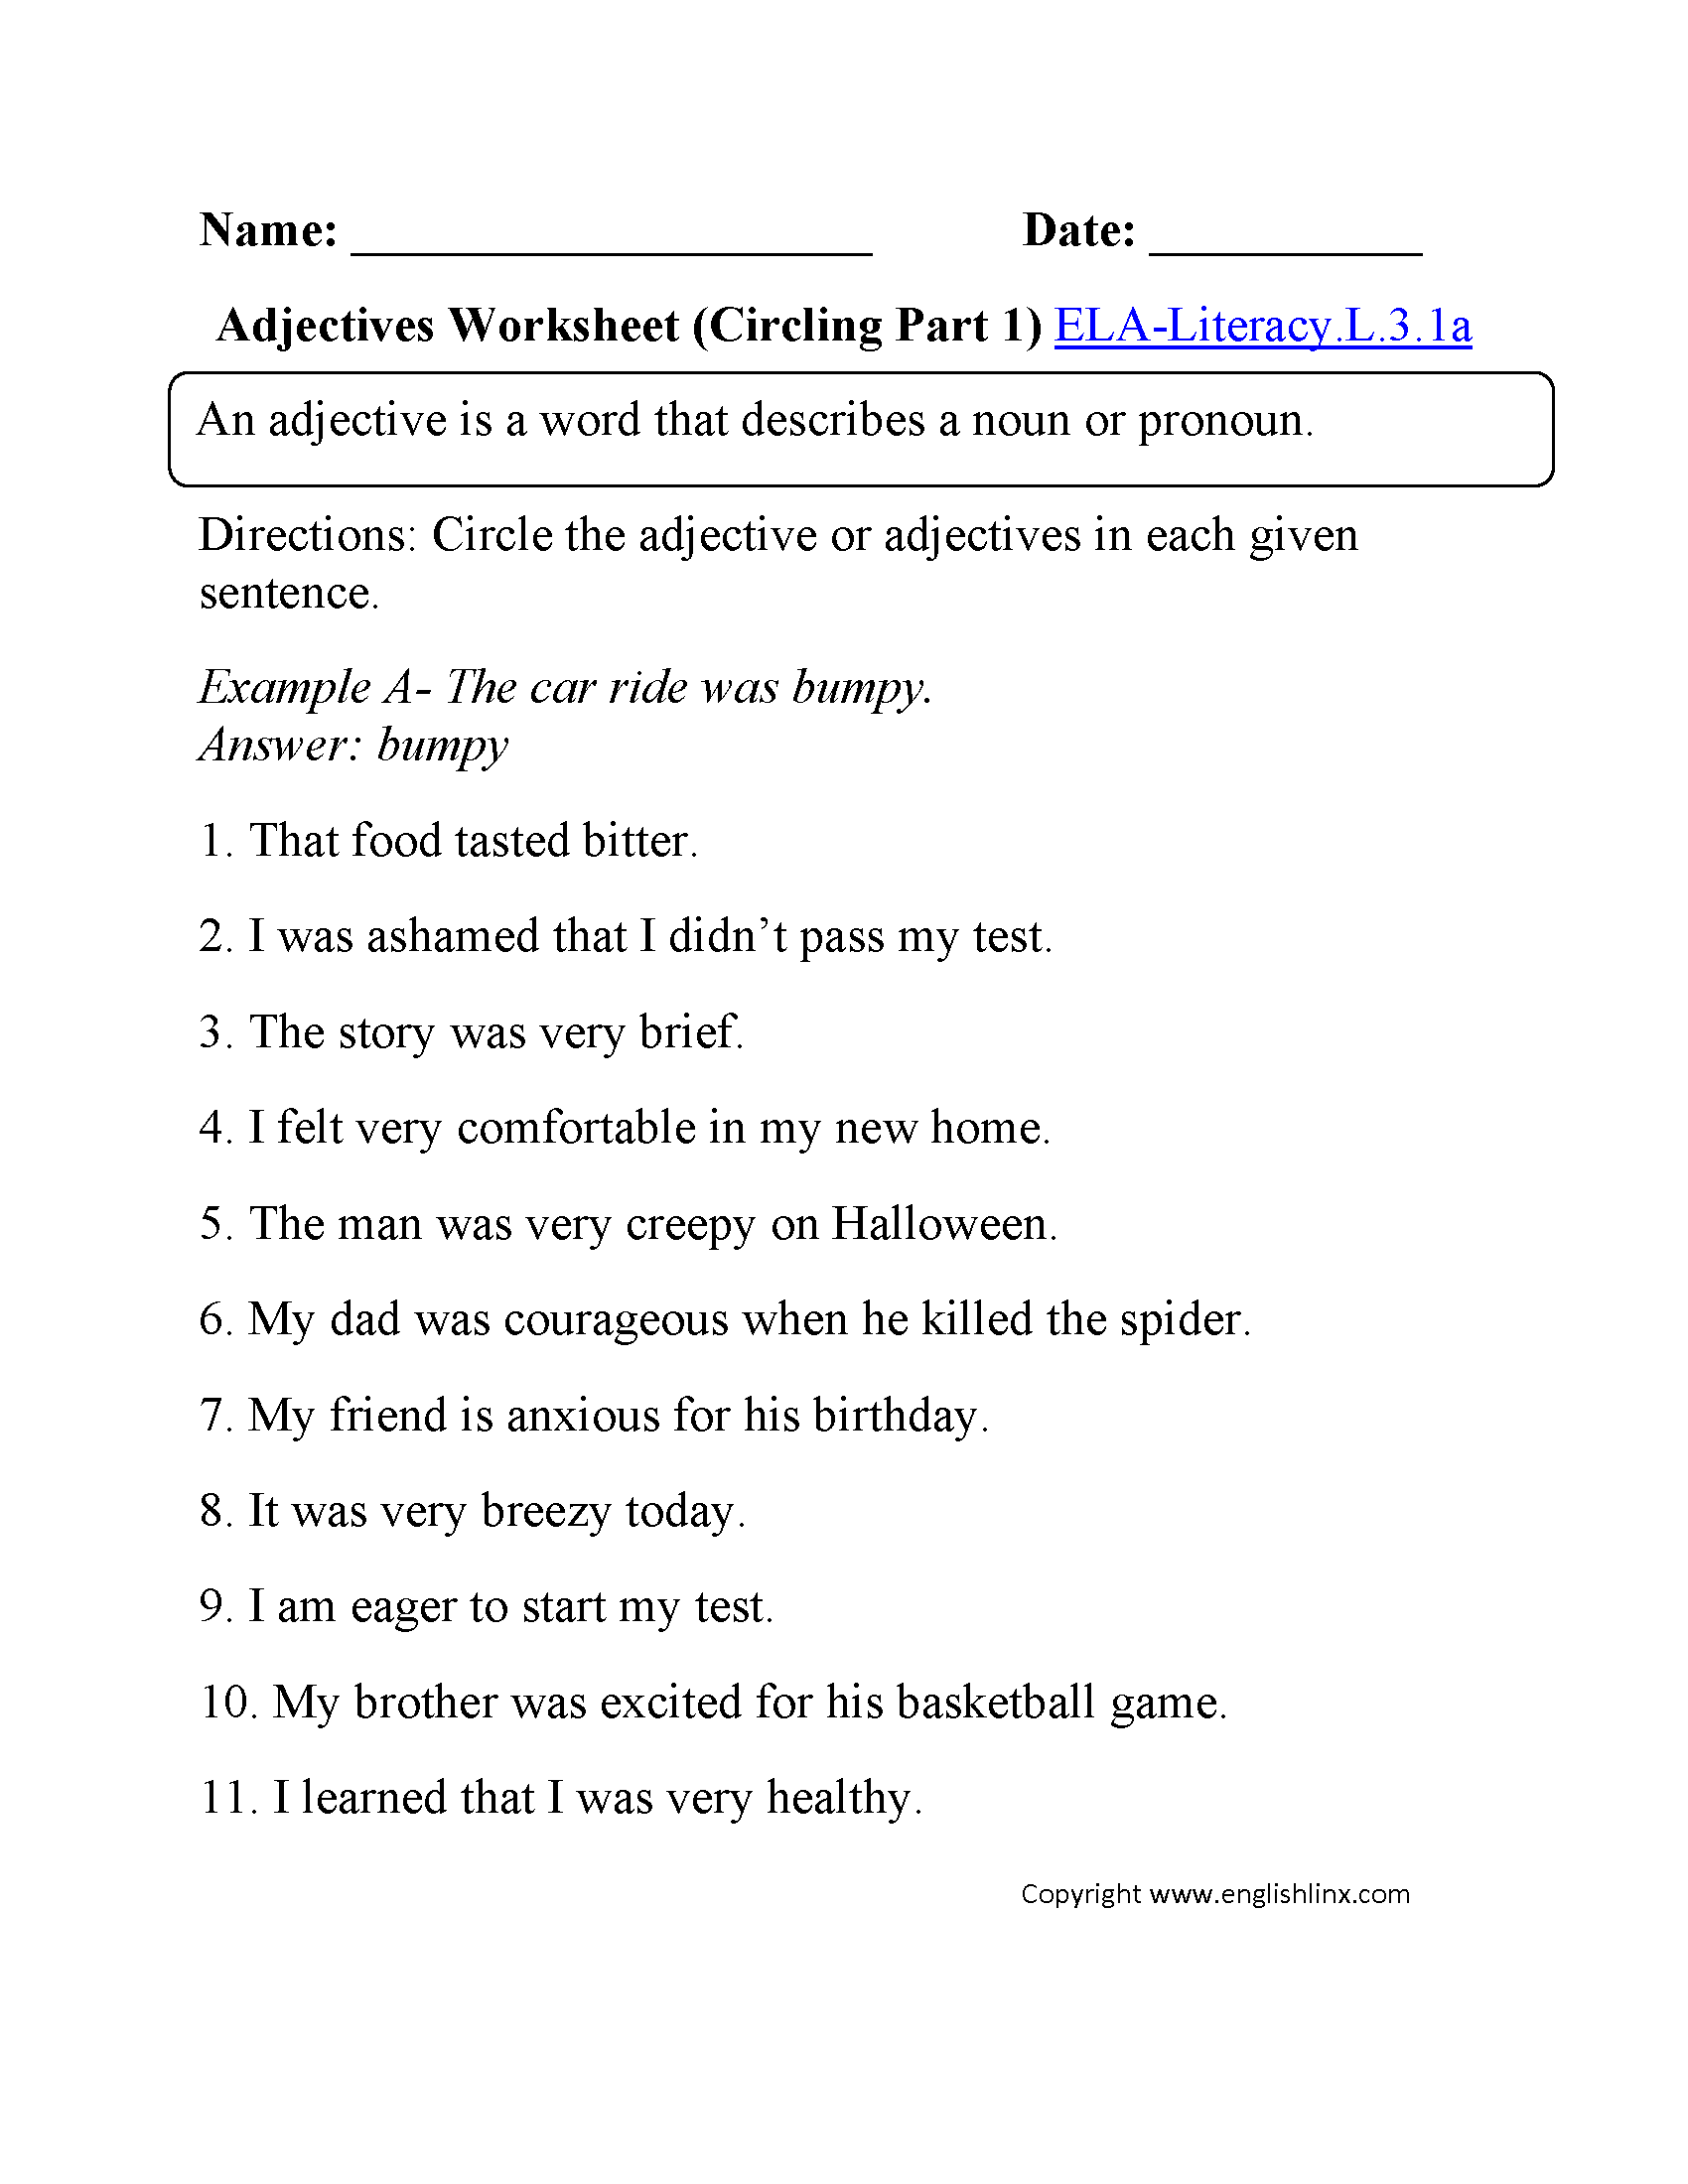 medium resolution of Adjectives Worksheet 1 ELA-Literacy.L.3.1a Language Worksheet   Free  grammar worksheet